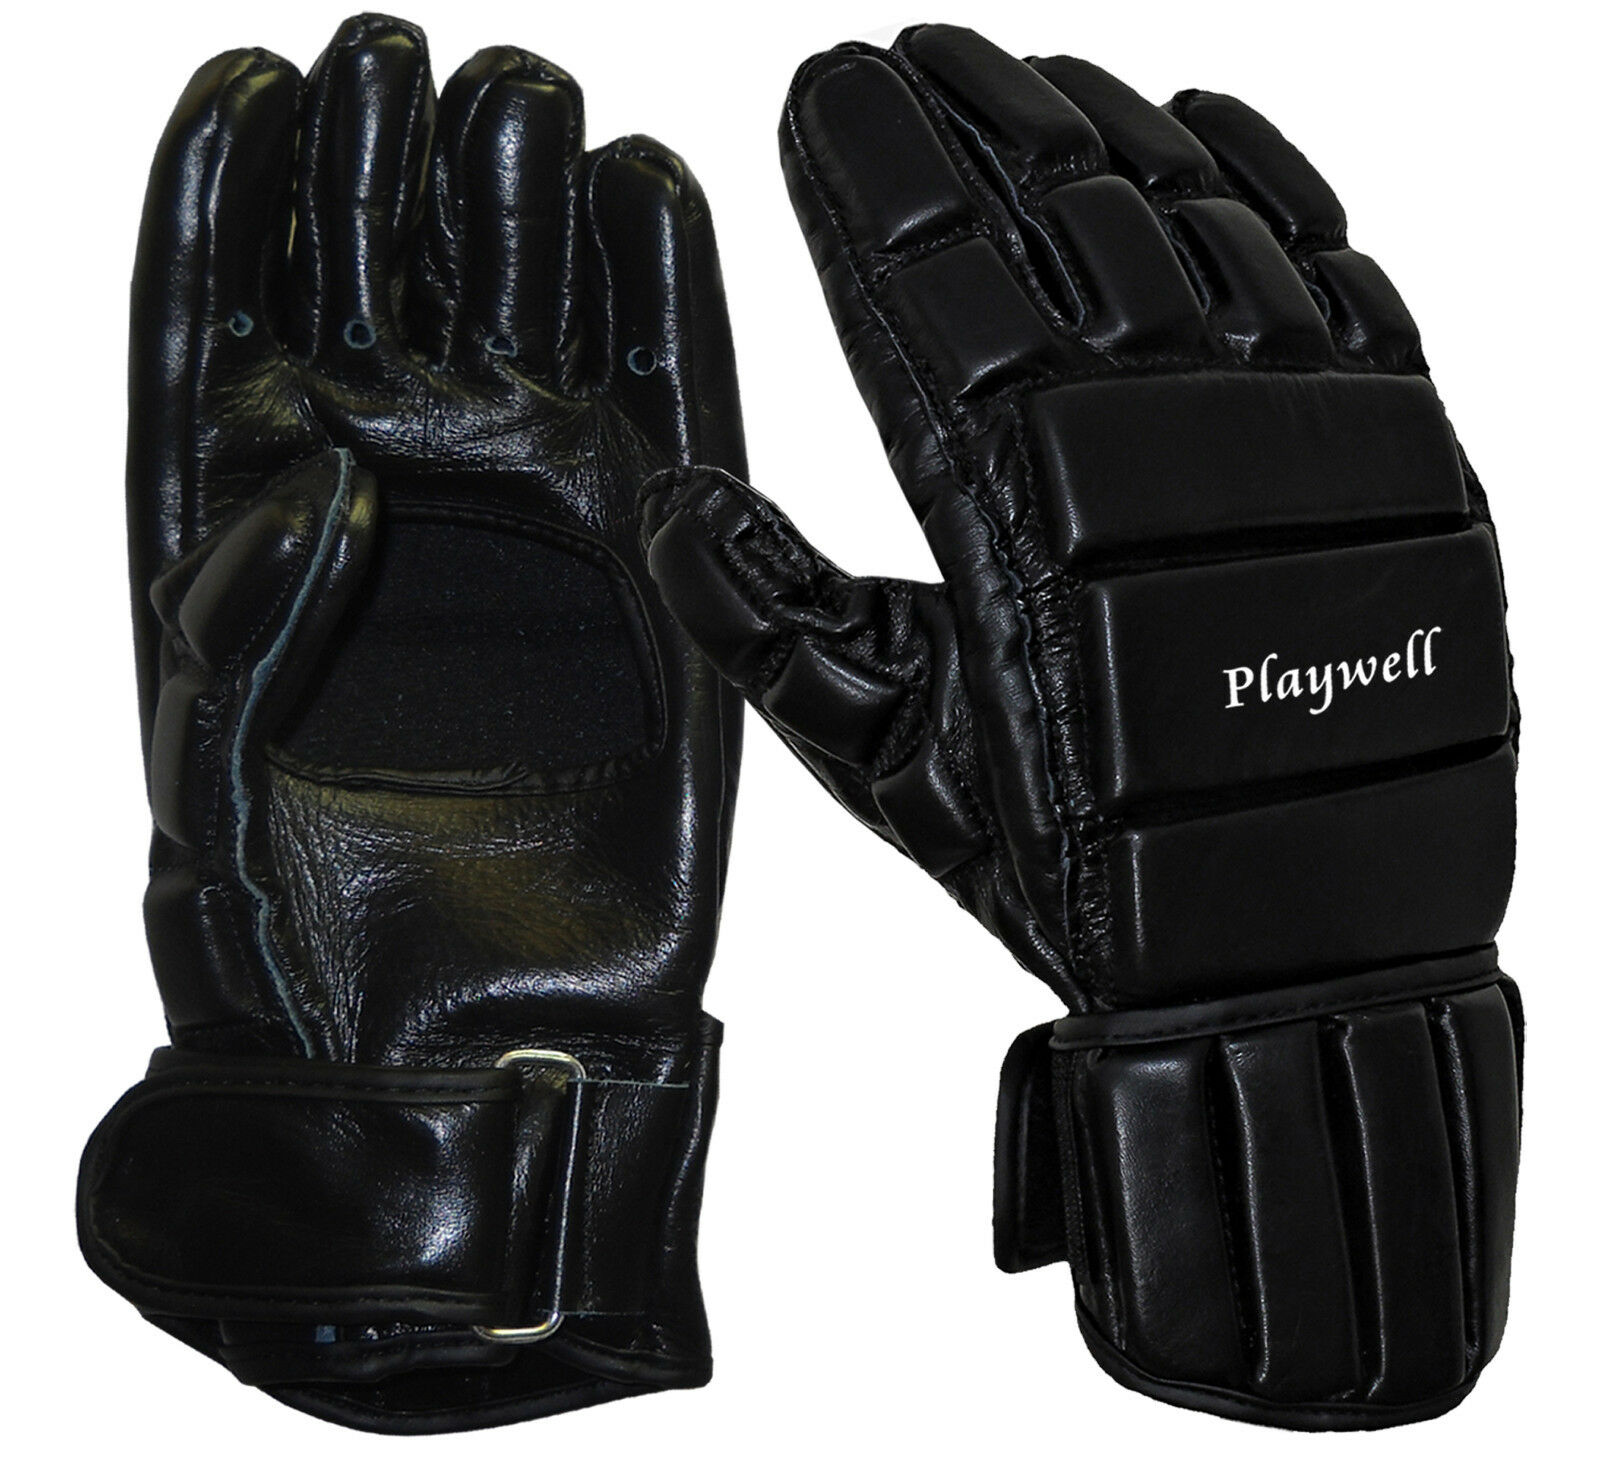 Details about Playwell Full Contact Leather Escrima Gloves Stick Fighting  Kali Mitts Training